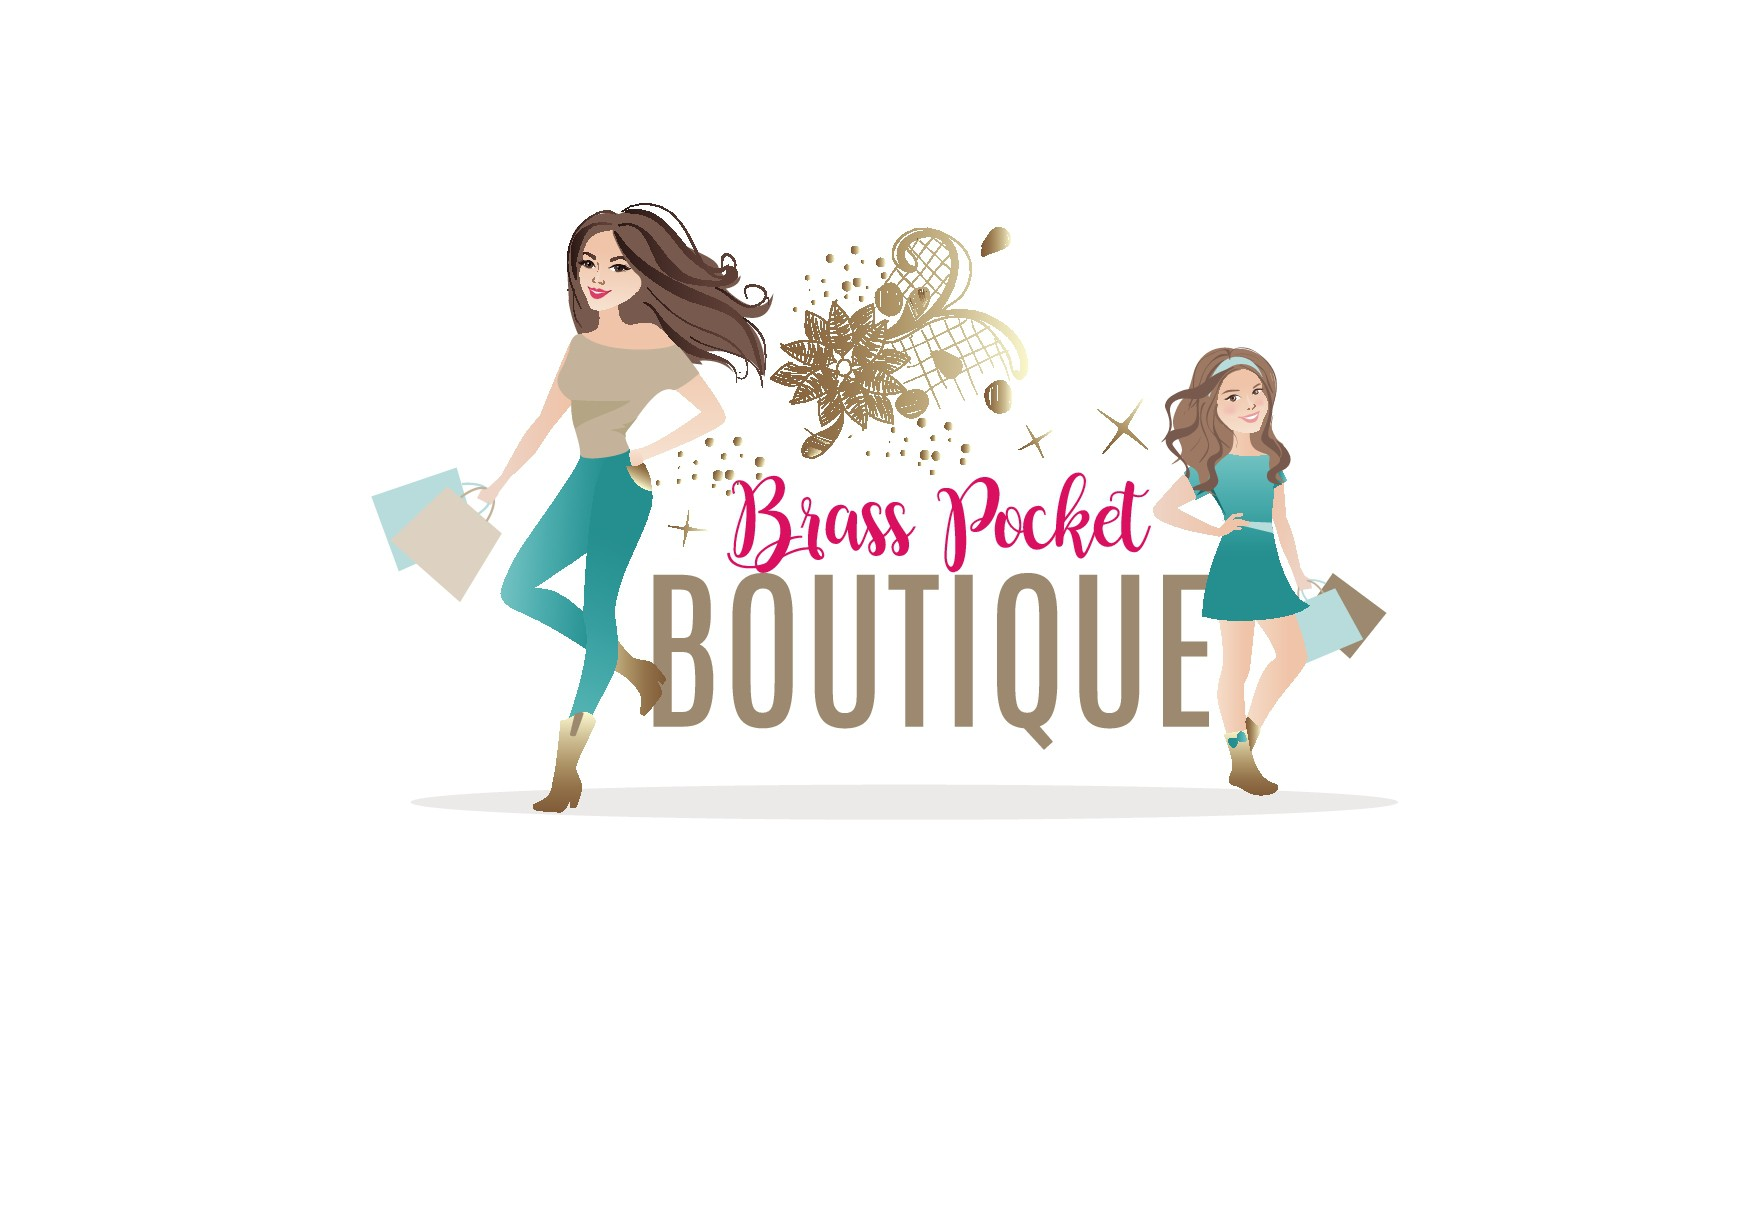 Adding a tween daughter to the logo